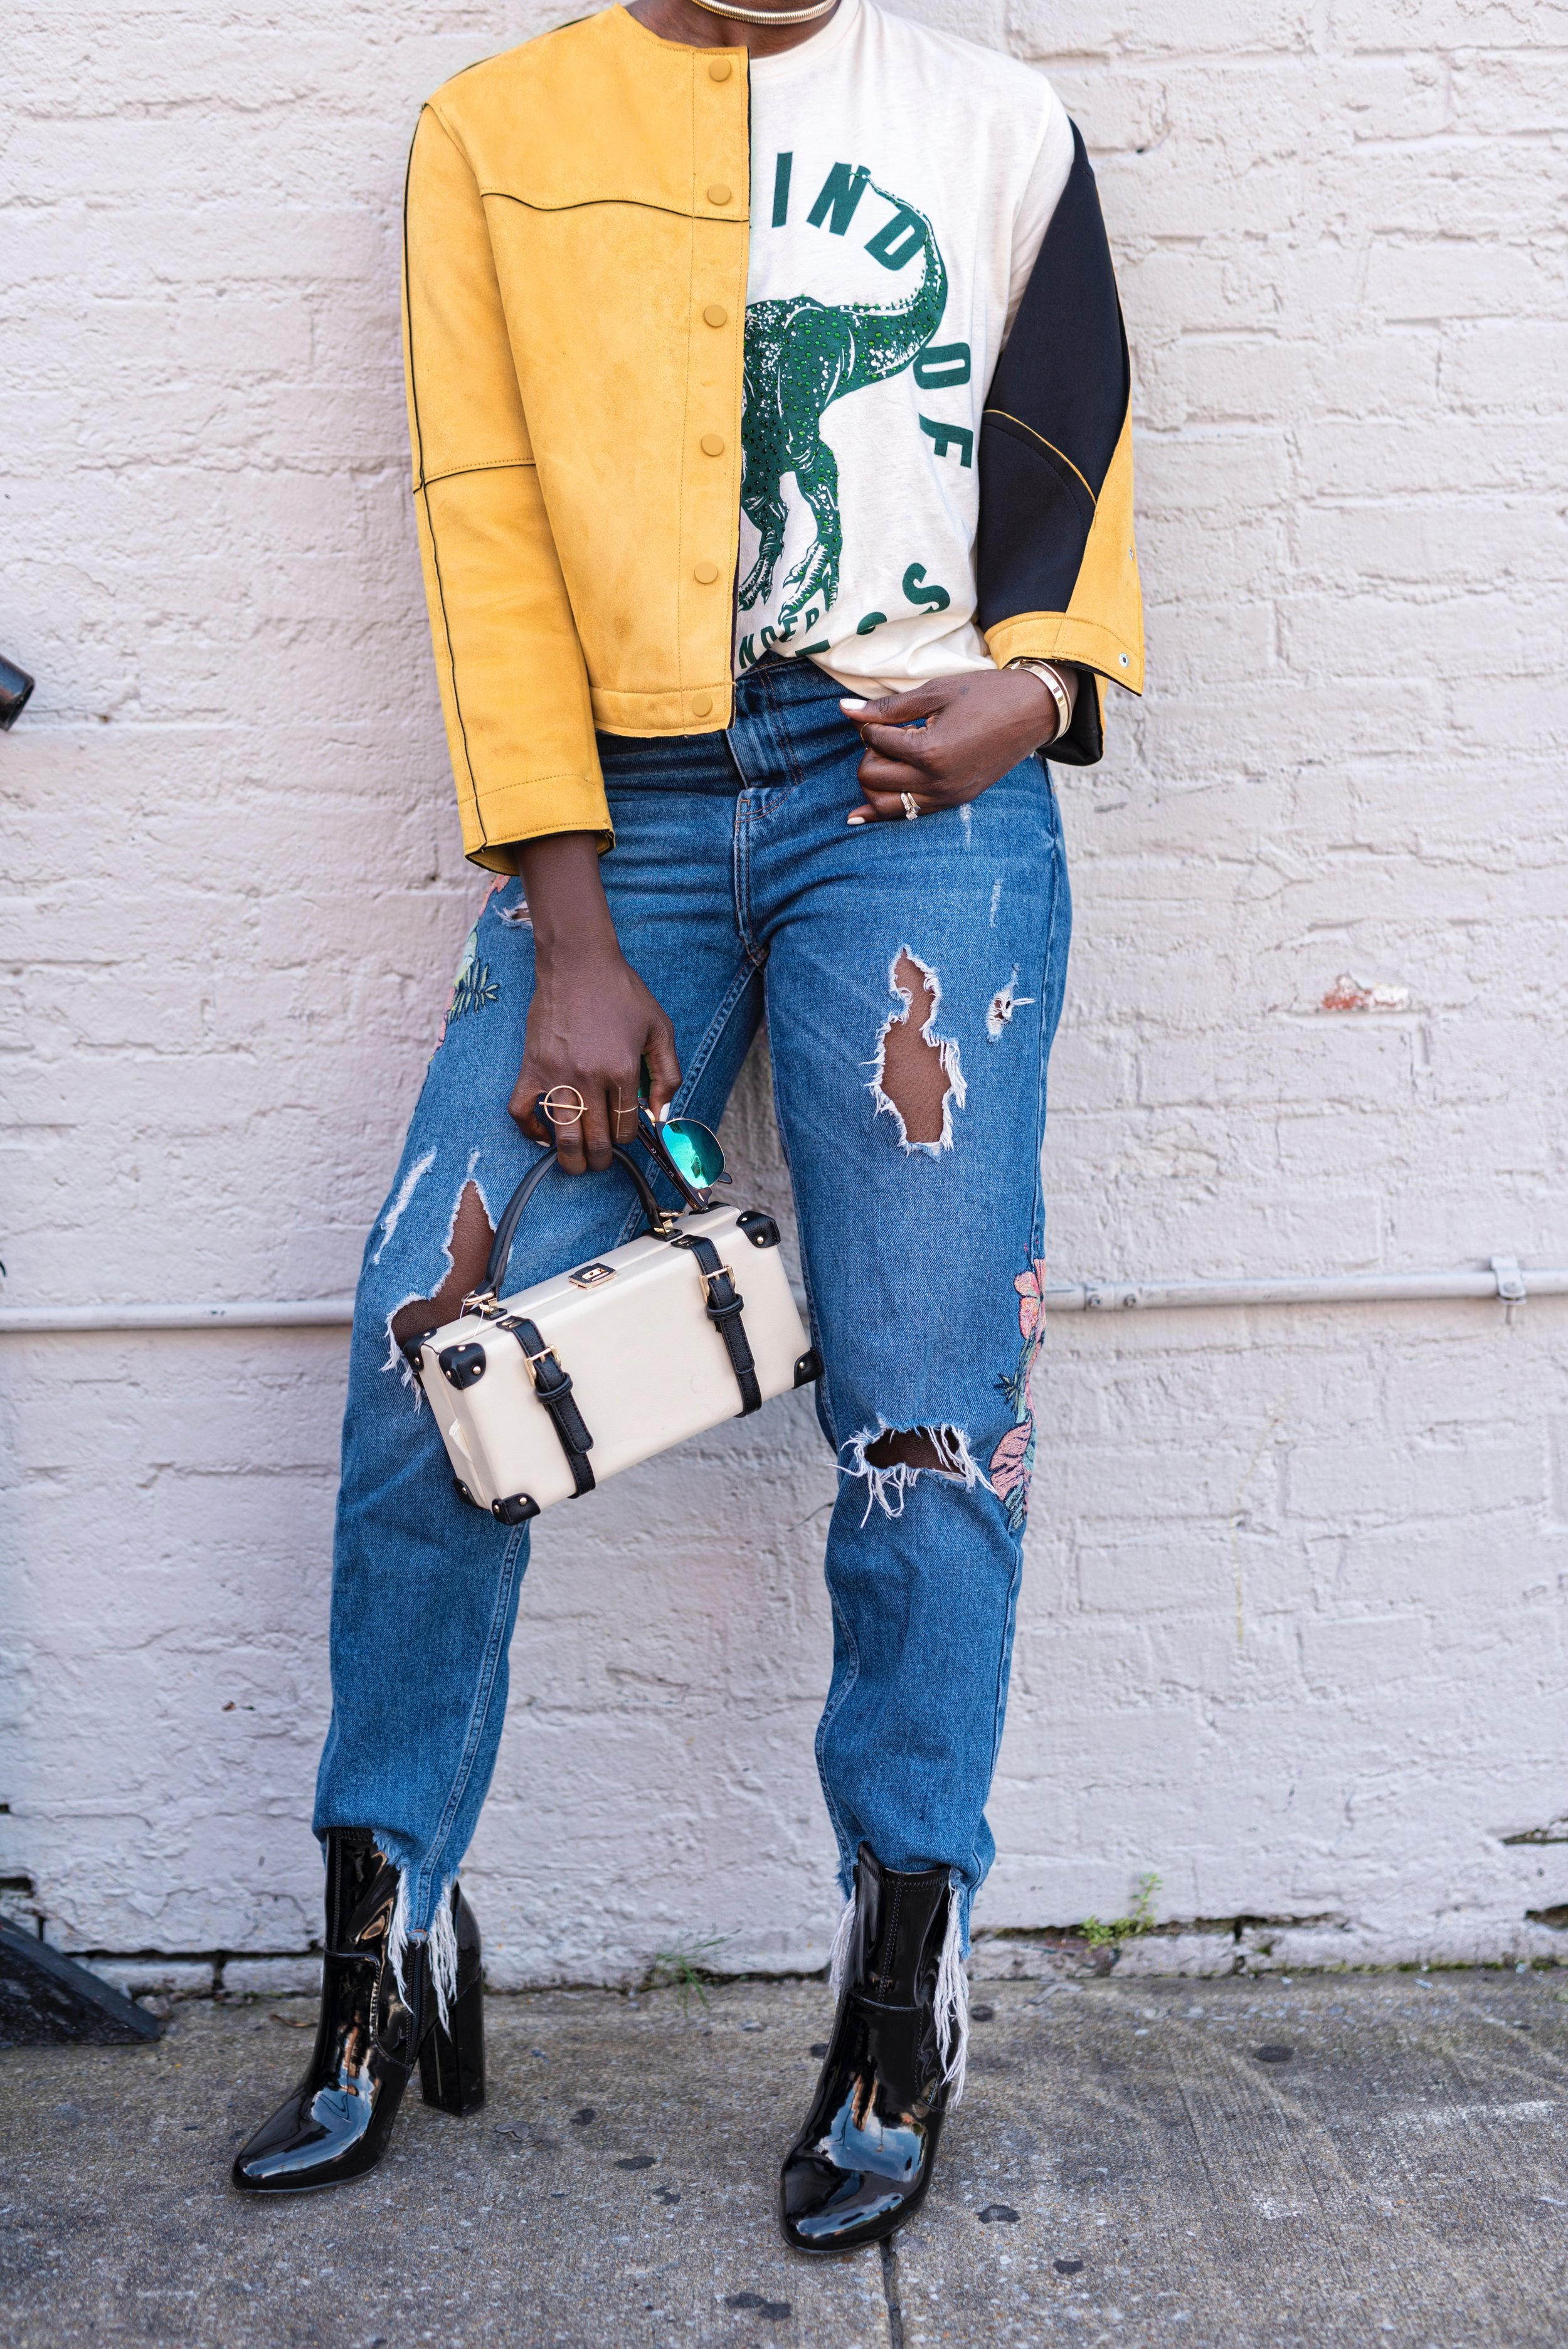 casual-fall-style-zara-yellow-jacket-graphic-tee-dayna-bolden6.jpg